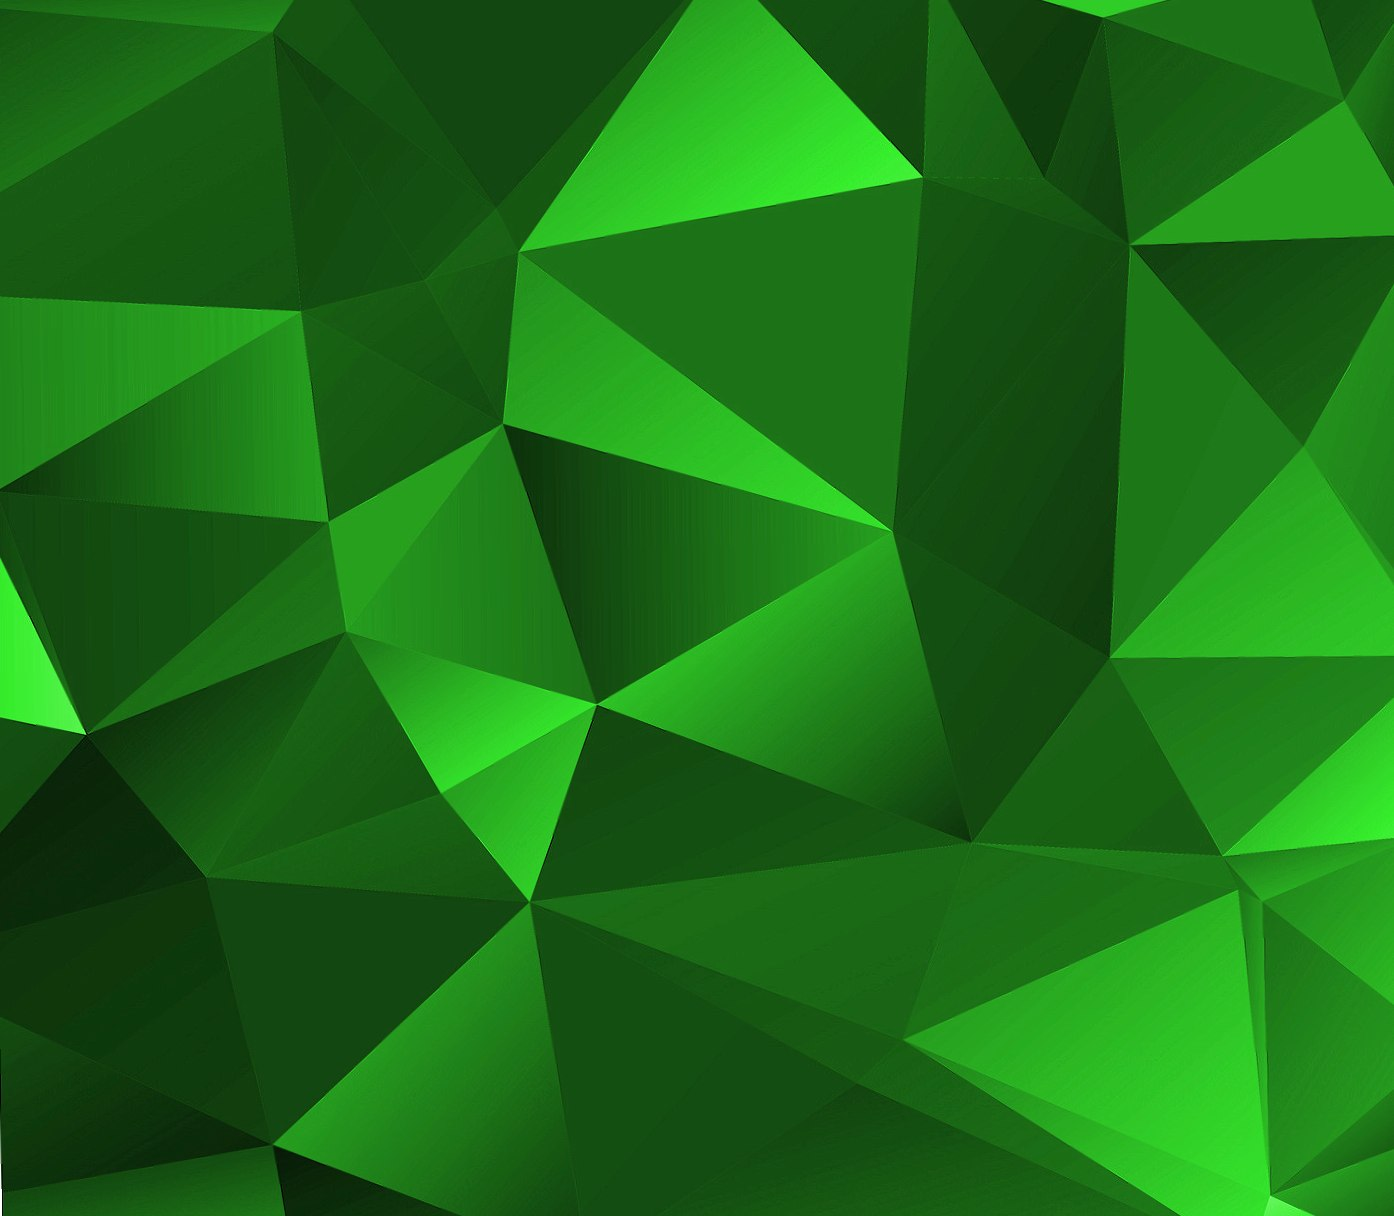 Green Polygon wallpapers HD quality